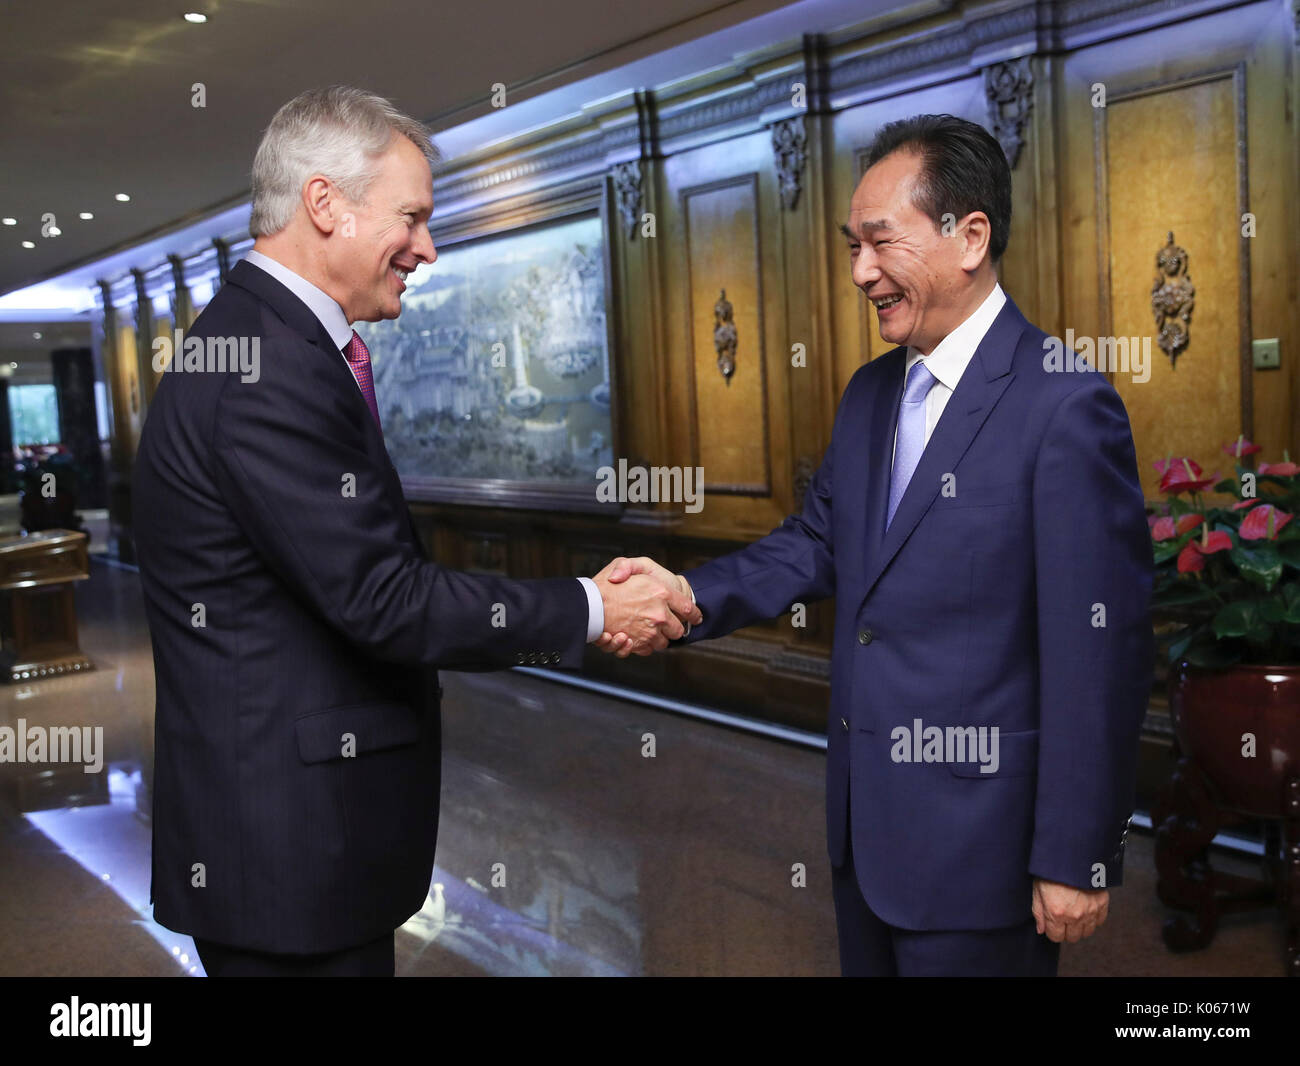 (170821) -- BEIJING, Aug. 21, 2017 (Xinhua) -- President of Xinhua News Agency Cai Mingzhao (R) meets with his Associated Press (AP) counterpart Gary Pruitt in Beijing, capital of China, Aug. 21, 2017. (Xinhua/Xie Huanchi) (zhs) - Stock Image